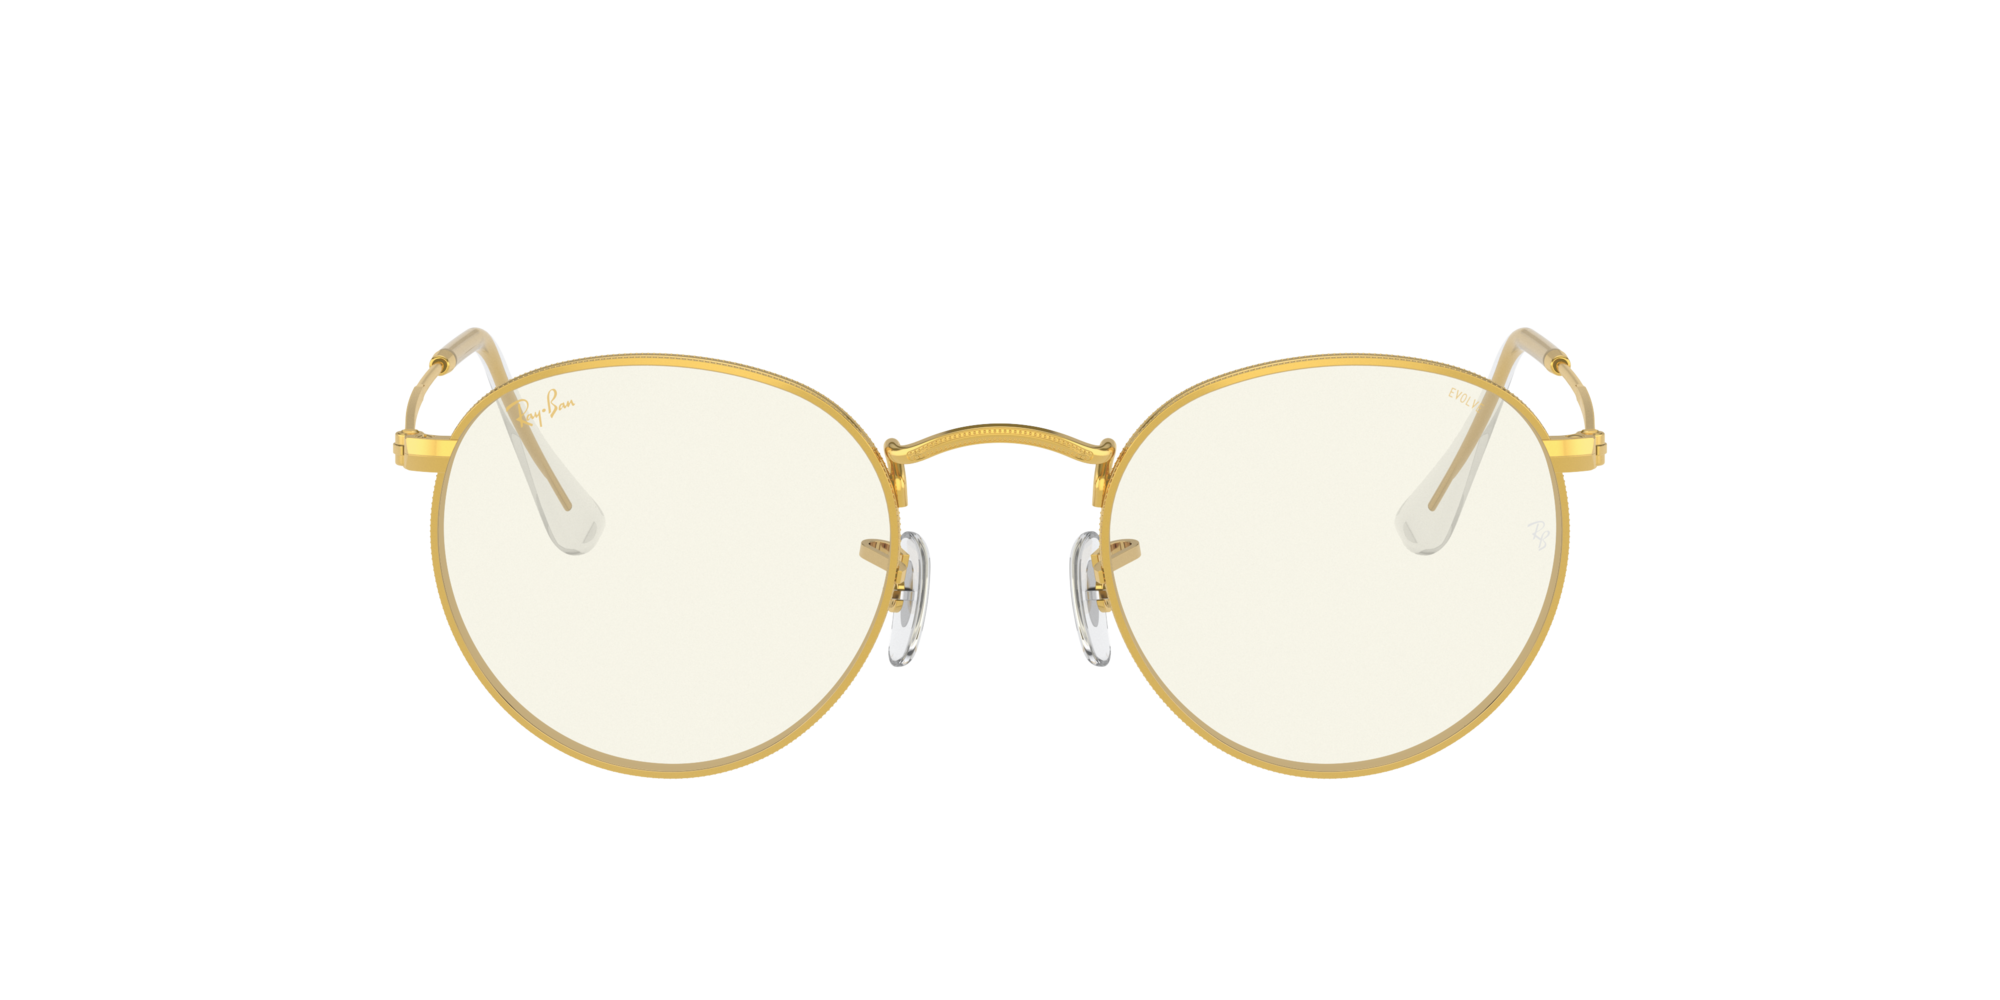 Image for RB3447 50 ROUND METAL from LensCrafters   Glasses, Prescription Glasses Online, Eyewear